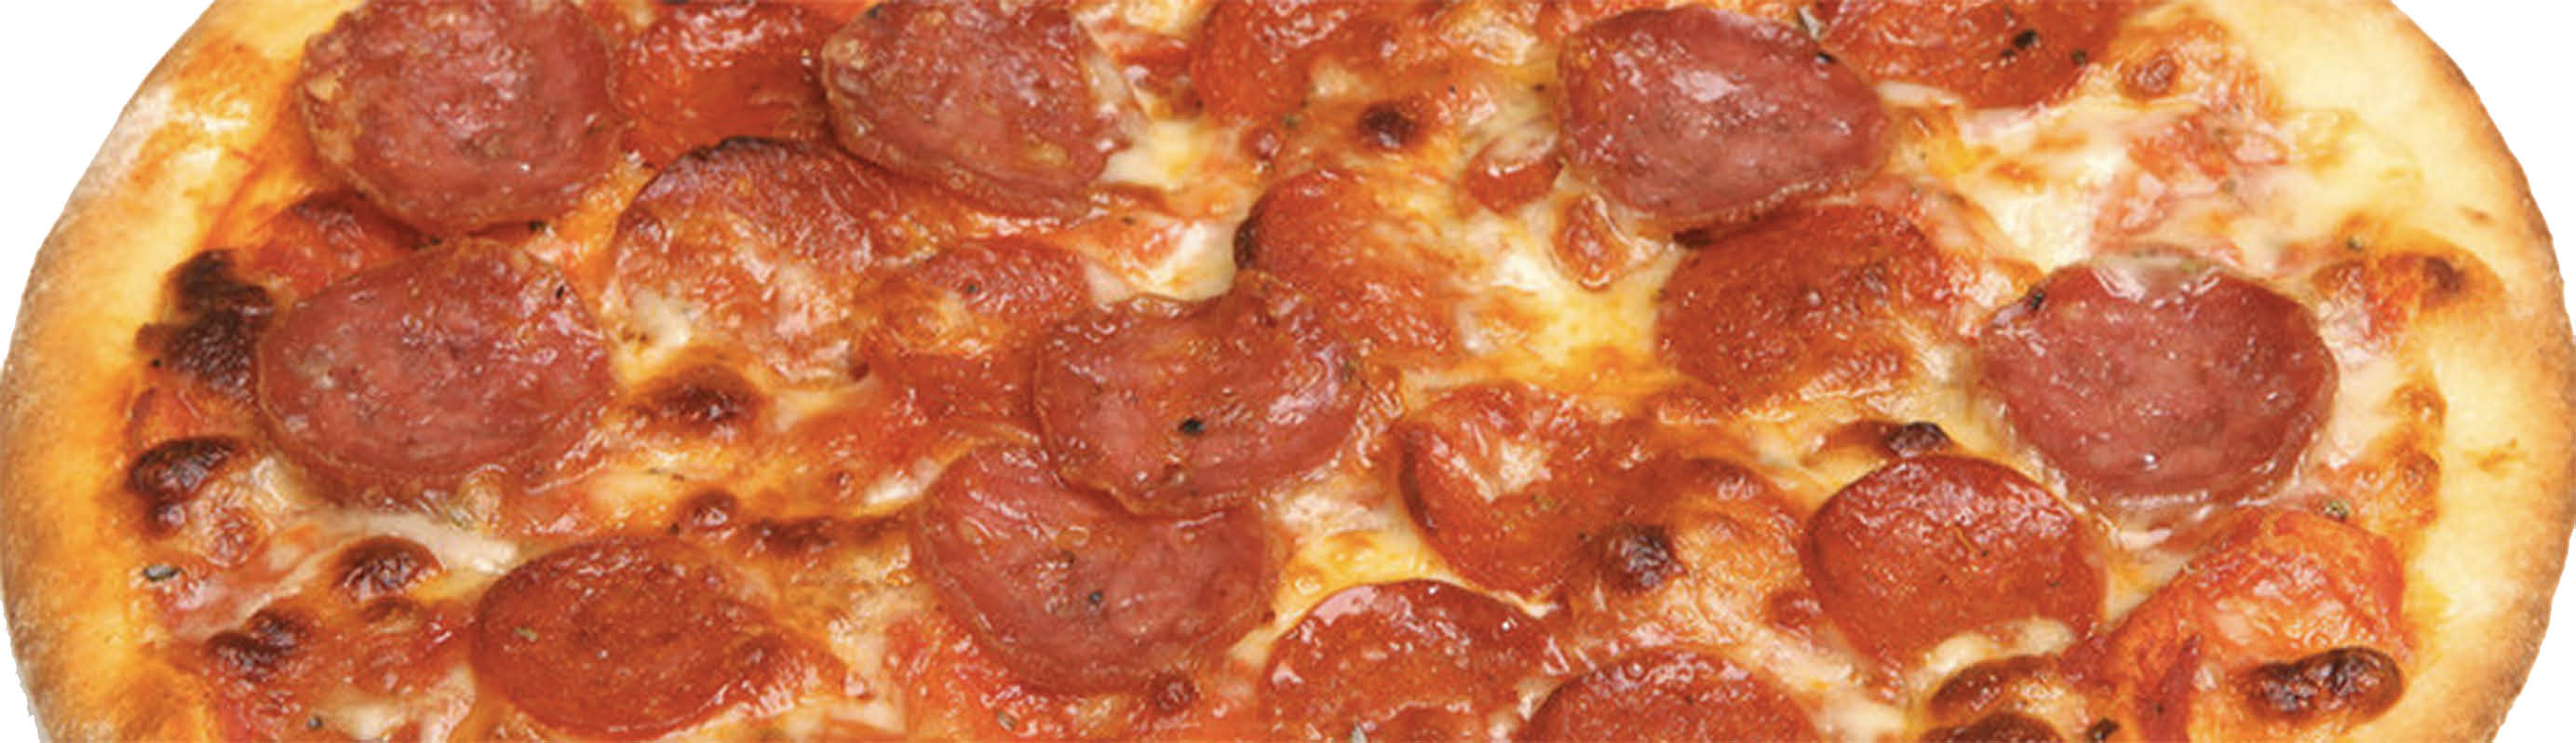 Hot and fresh pepperoni pizza from Pisa Pizza